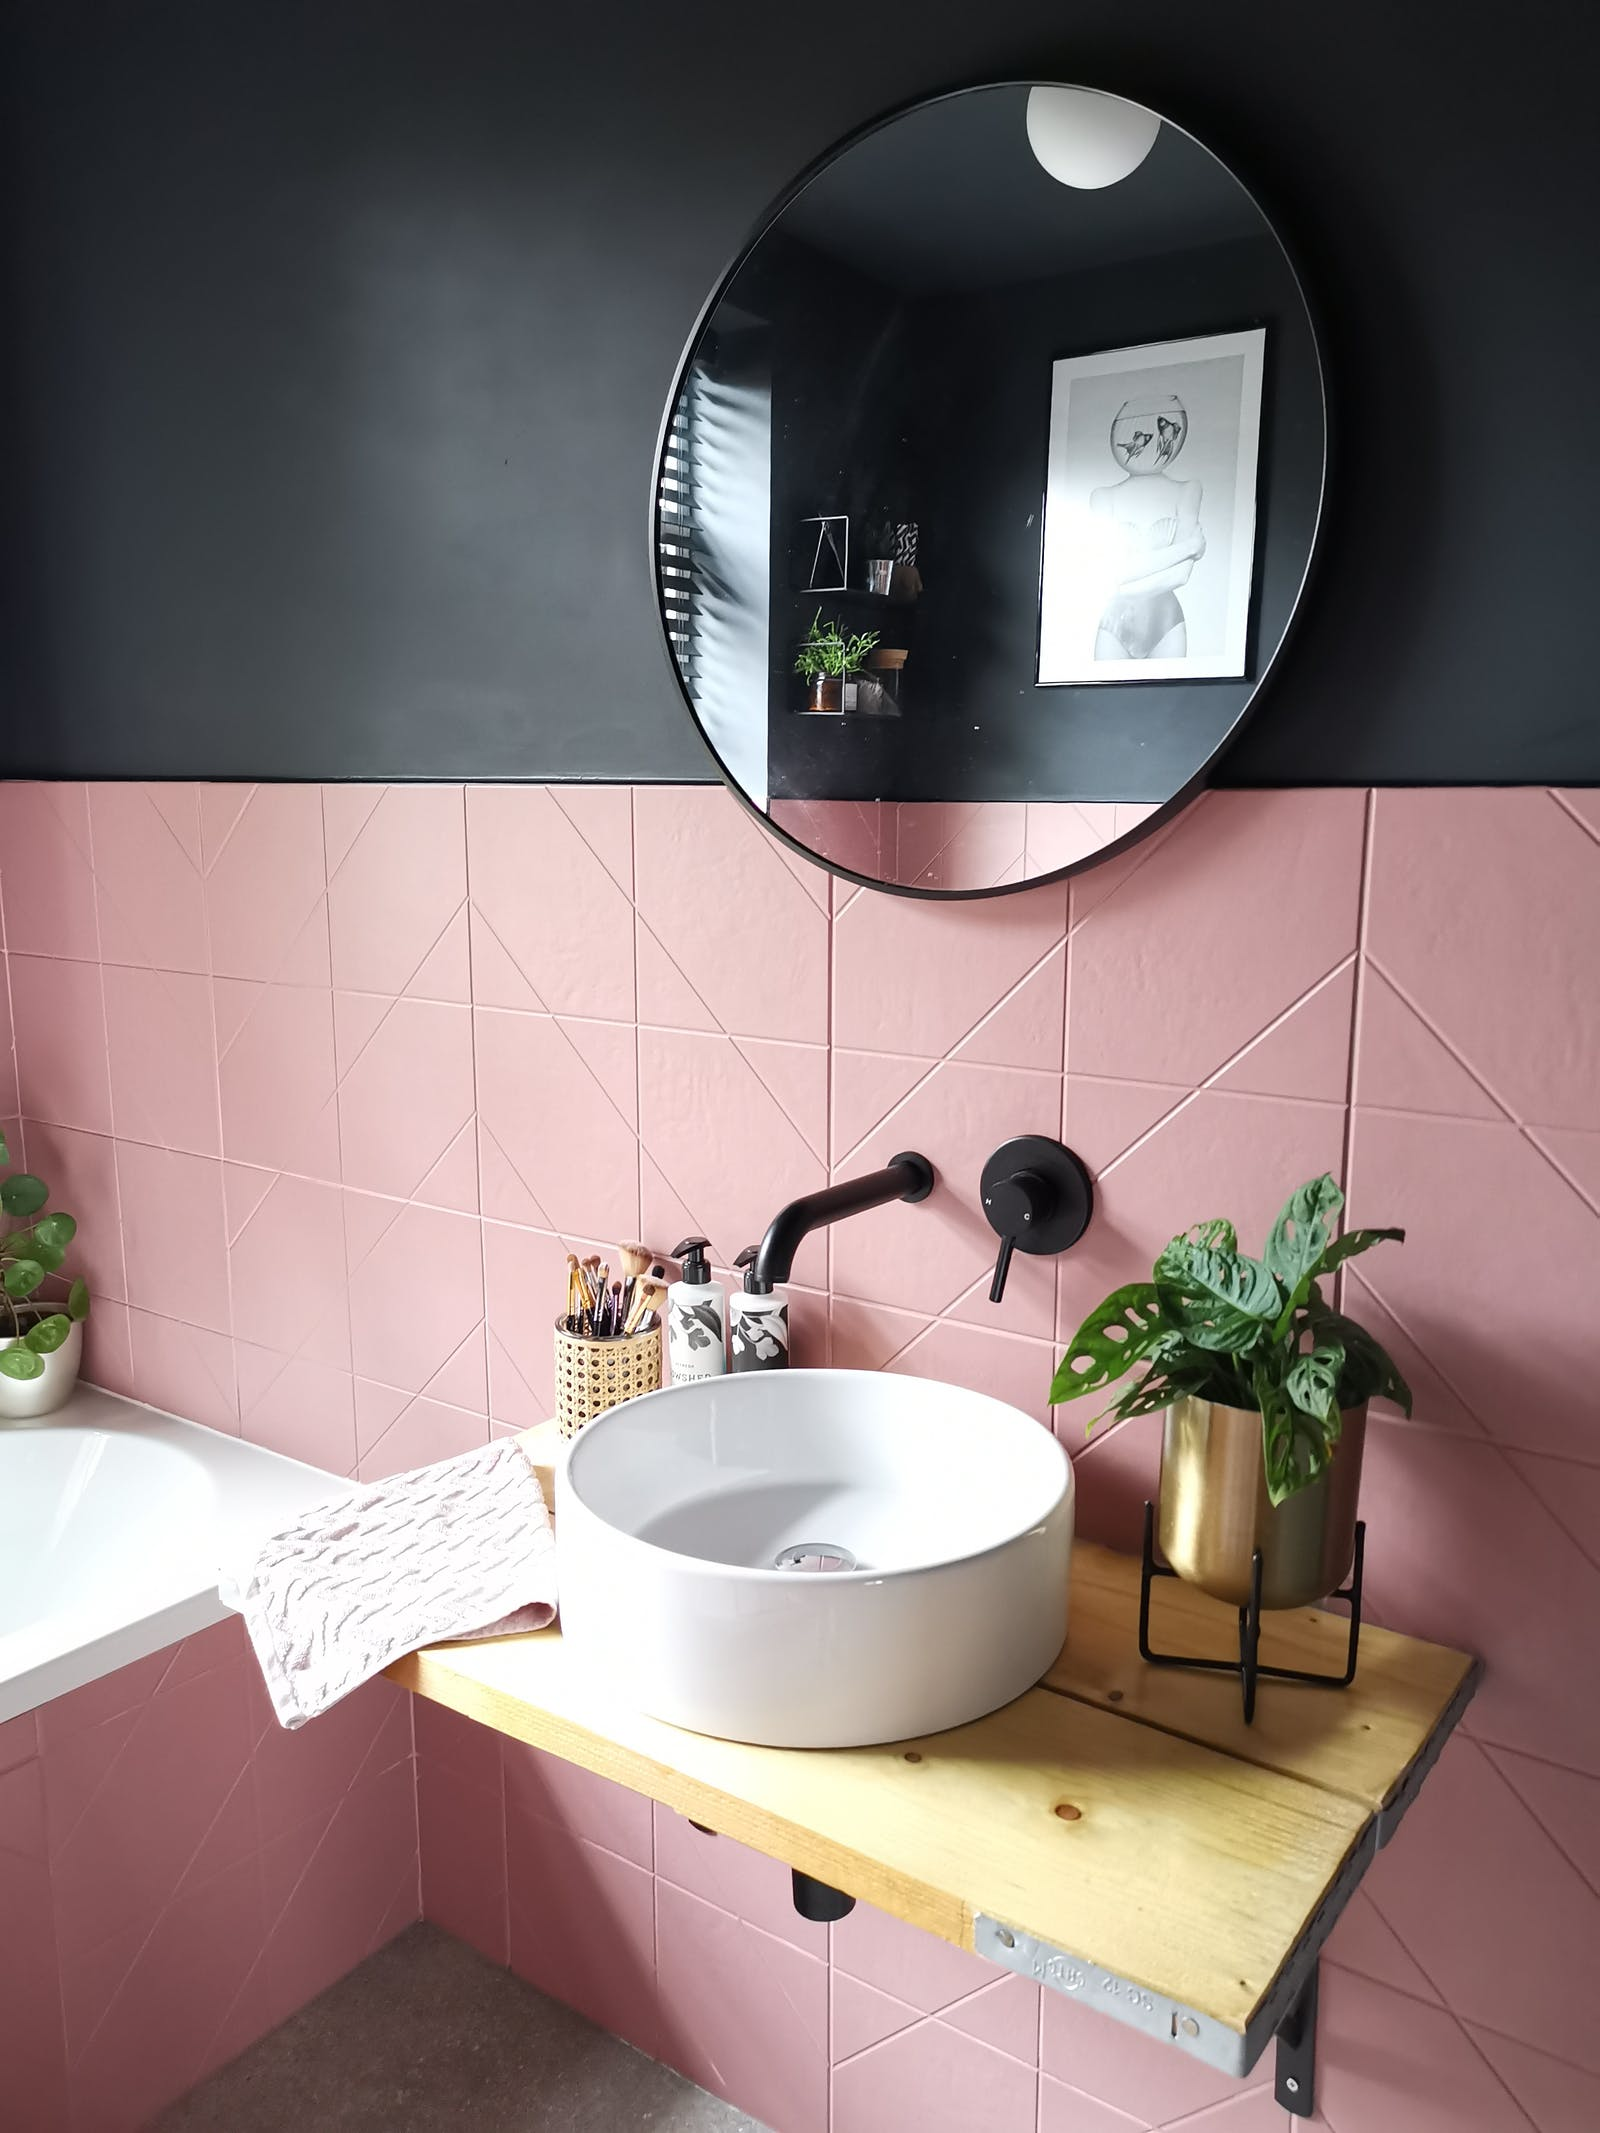 Bathroom painted in black with pink tiles and a wooden sink